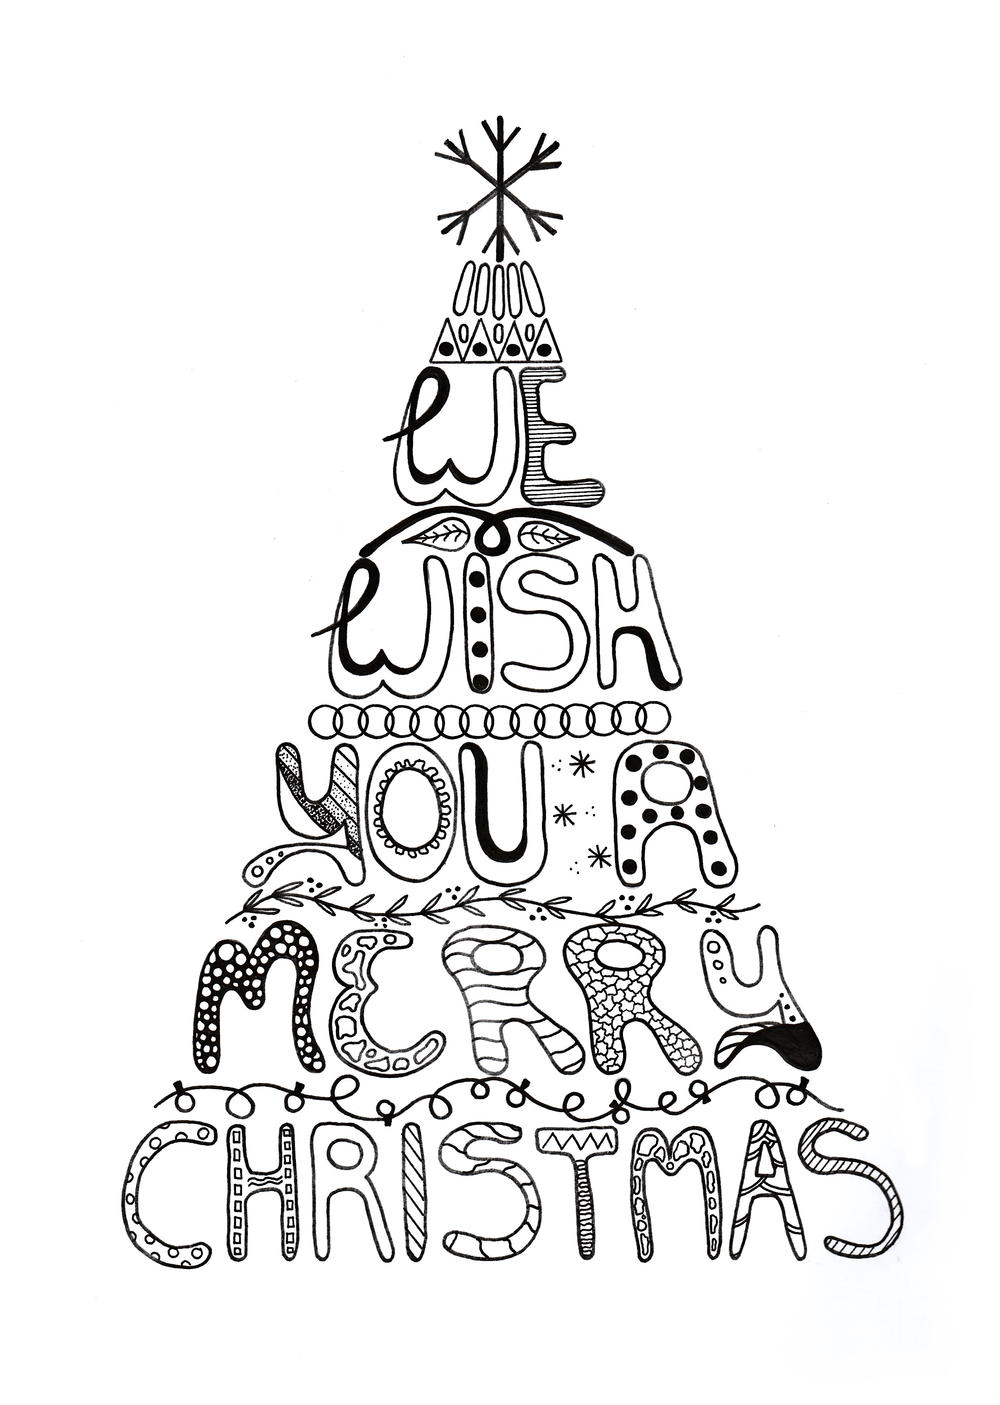 Merry Christmas Adult Coloring Page | AllFreePaperCrafts.com